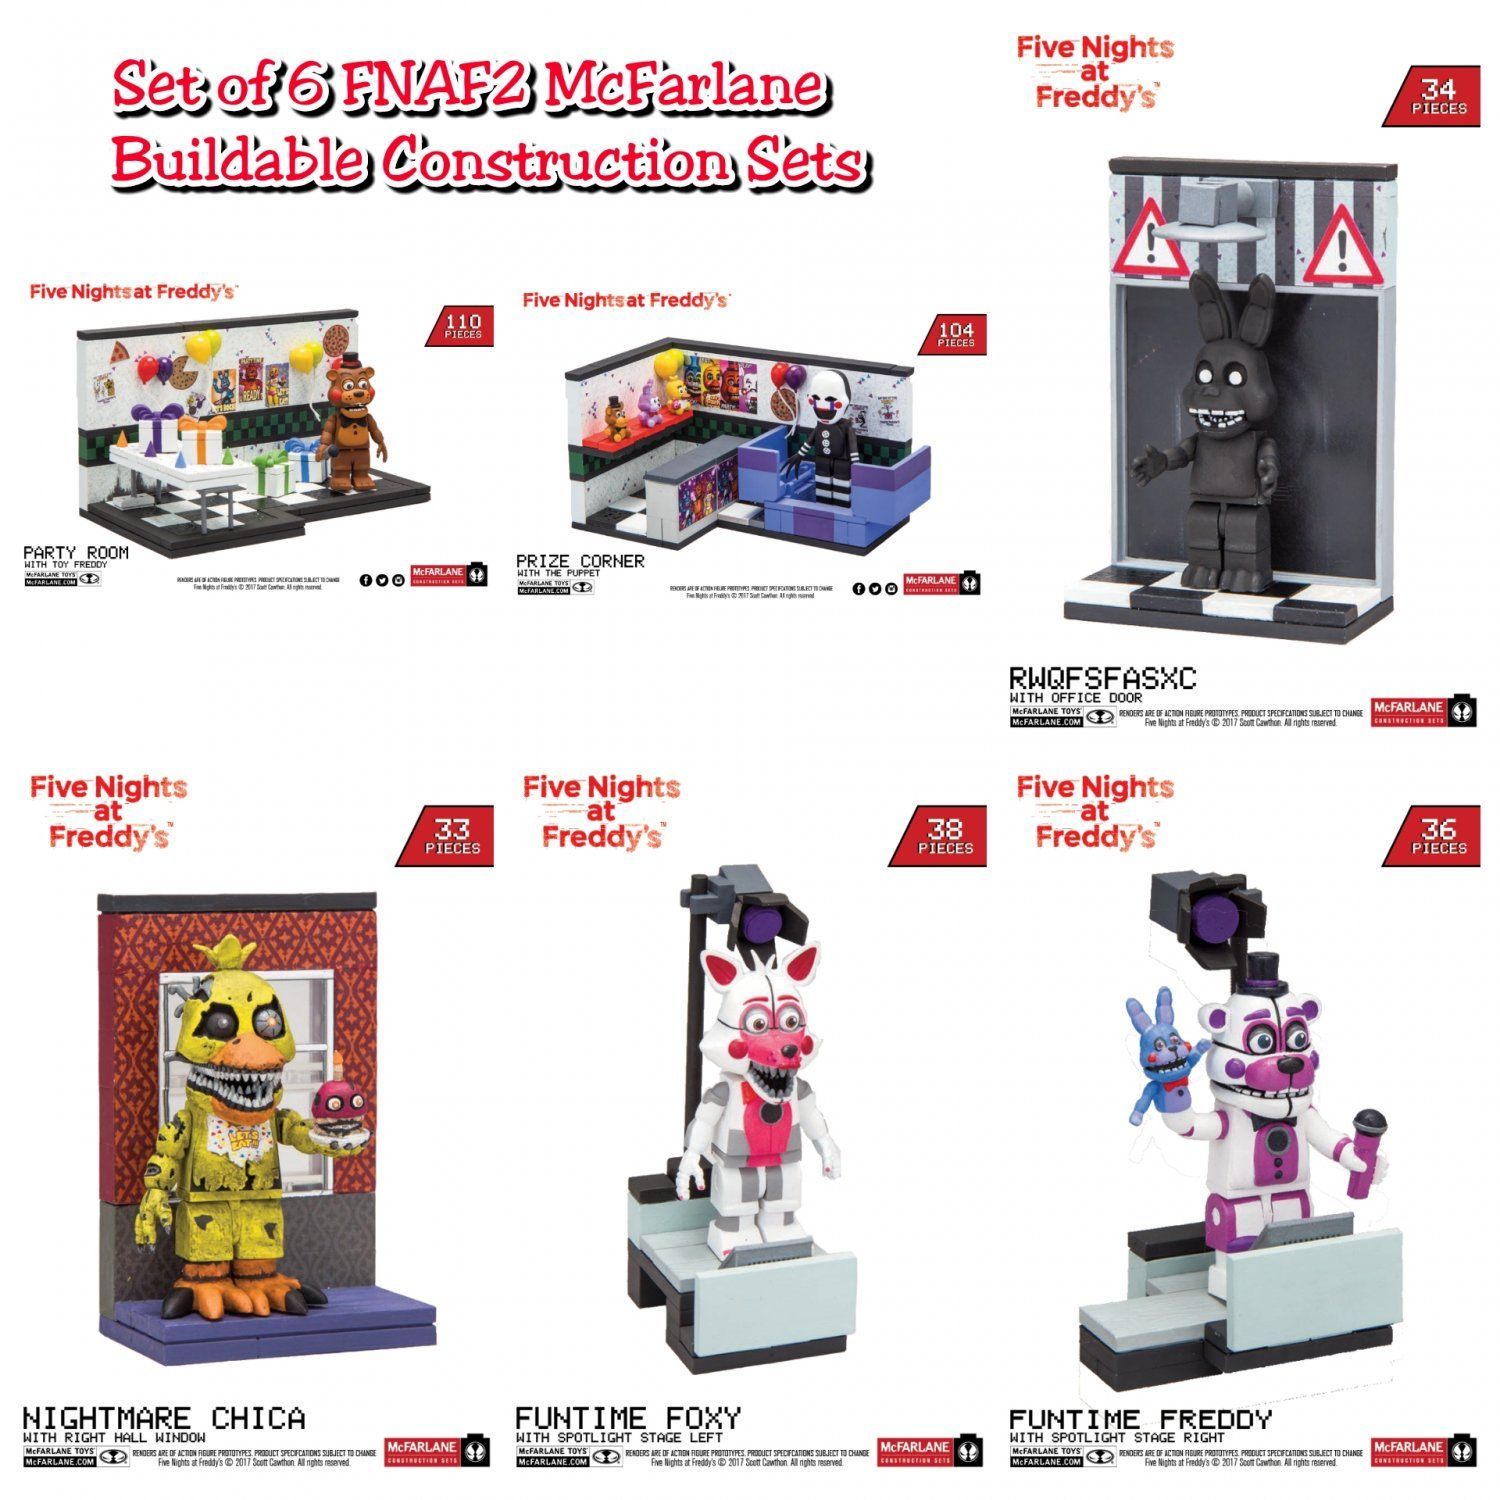 More five nights at freddy s construction sets coming soon - Lot Of 6 Mcfarlane Toys Five Nights At Freddy S Fnaf2 Buildable Construction Sets